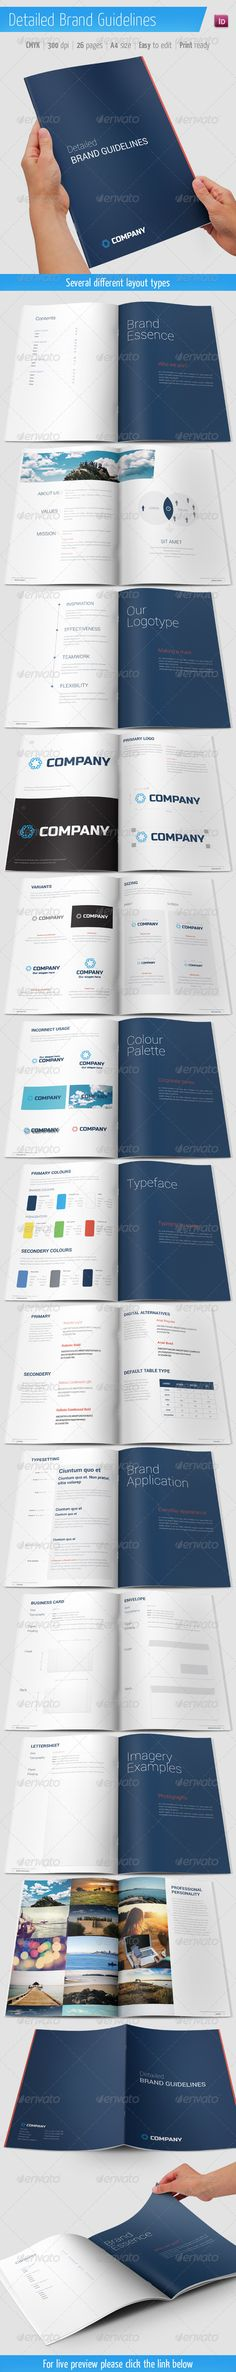 Detailed Brand Guidelines  #booklet #brand guideline #branding • Available here → http://graphicriver.net/item/detailed-brand-guidelines/5898210?s_rank=359&ref=pxcr